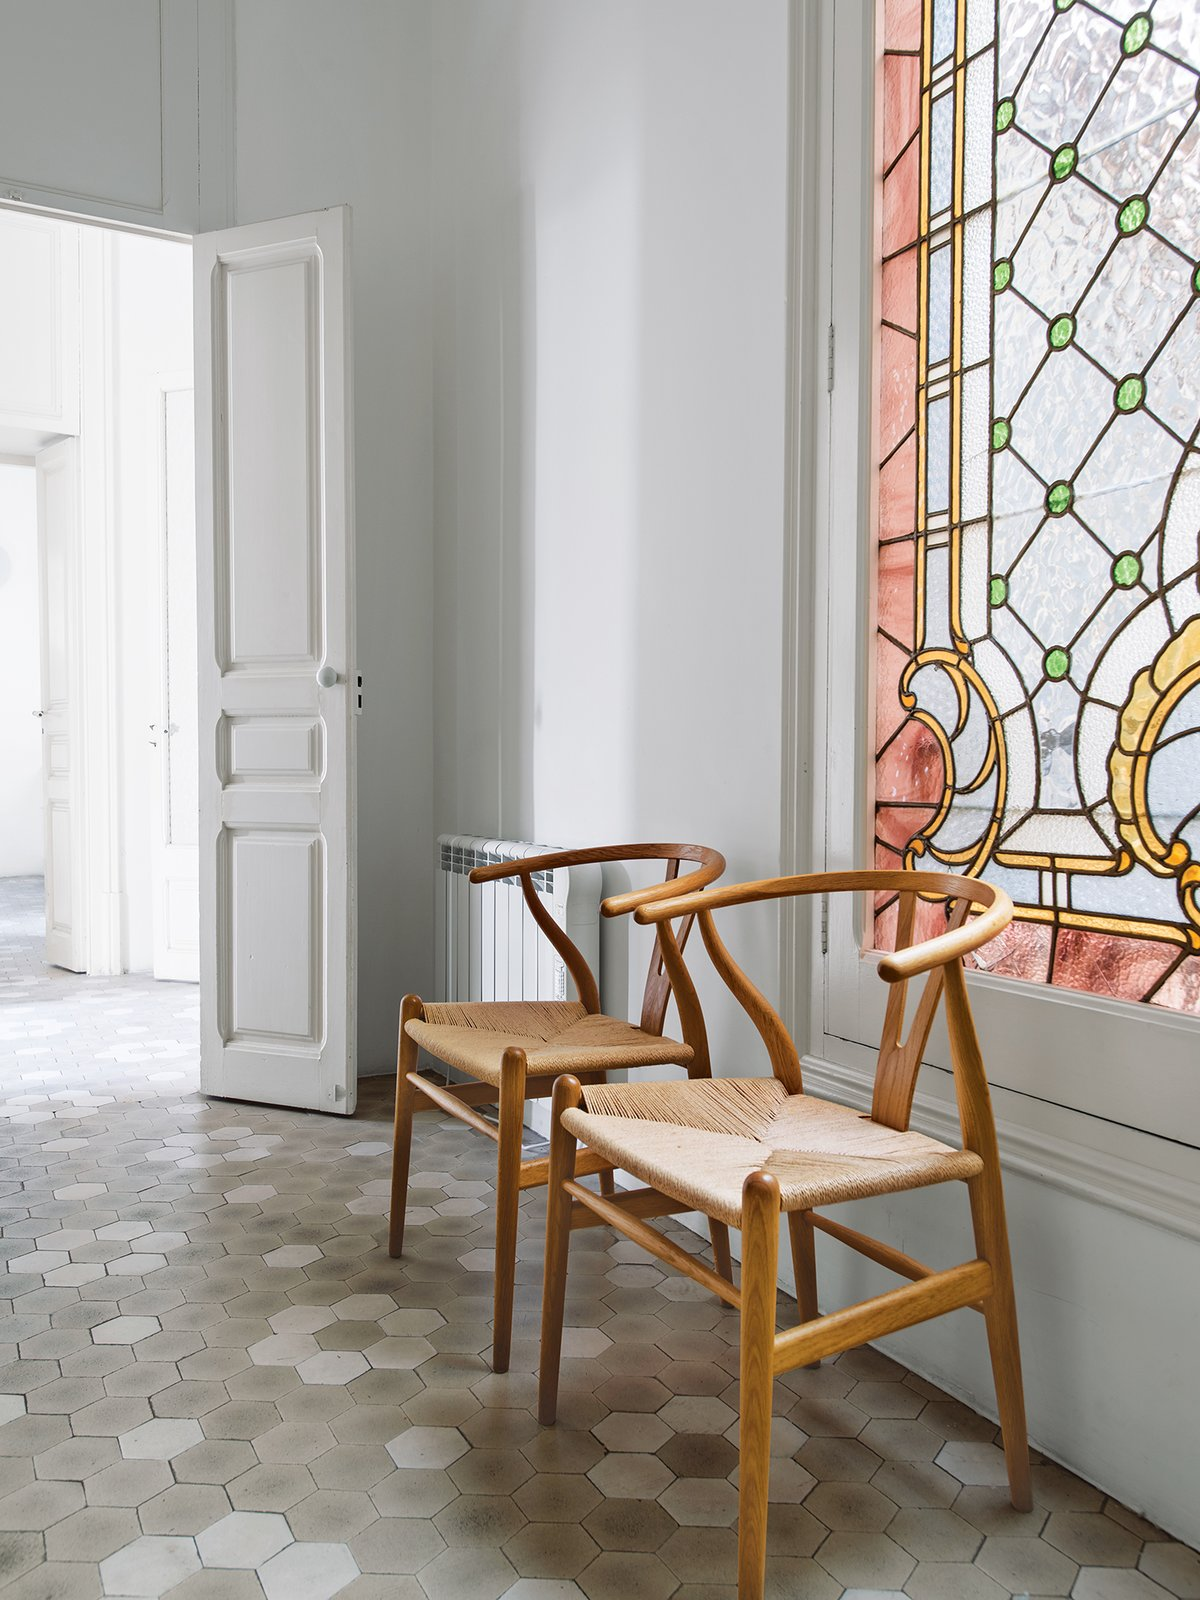 """In the hall, the designer allowed the original details to resonate. """"The old building has a lot to tell us,"""" she says.  Photo 10 of 10 in How to Save Historic Windows on an Existing Property from Love at First Sight"""